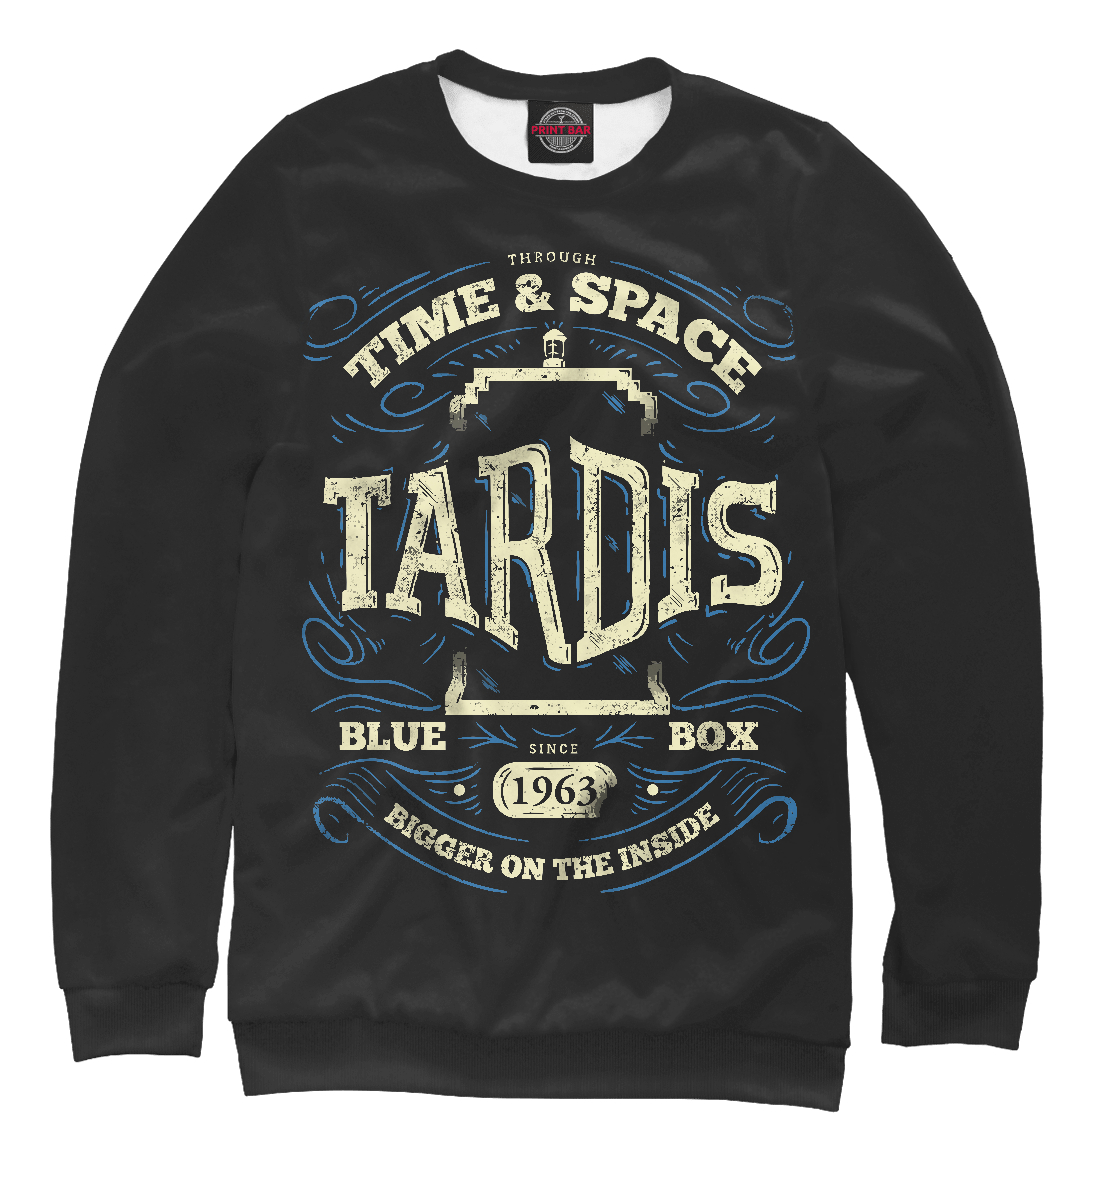 Купить Tardis - Time & Space, Printbar, Свитшоты, DOK-235604-swi-1